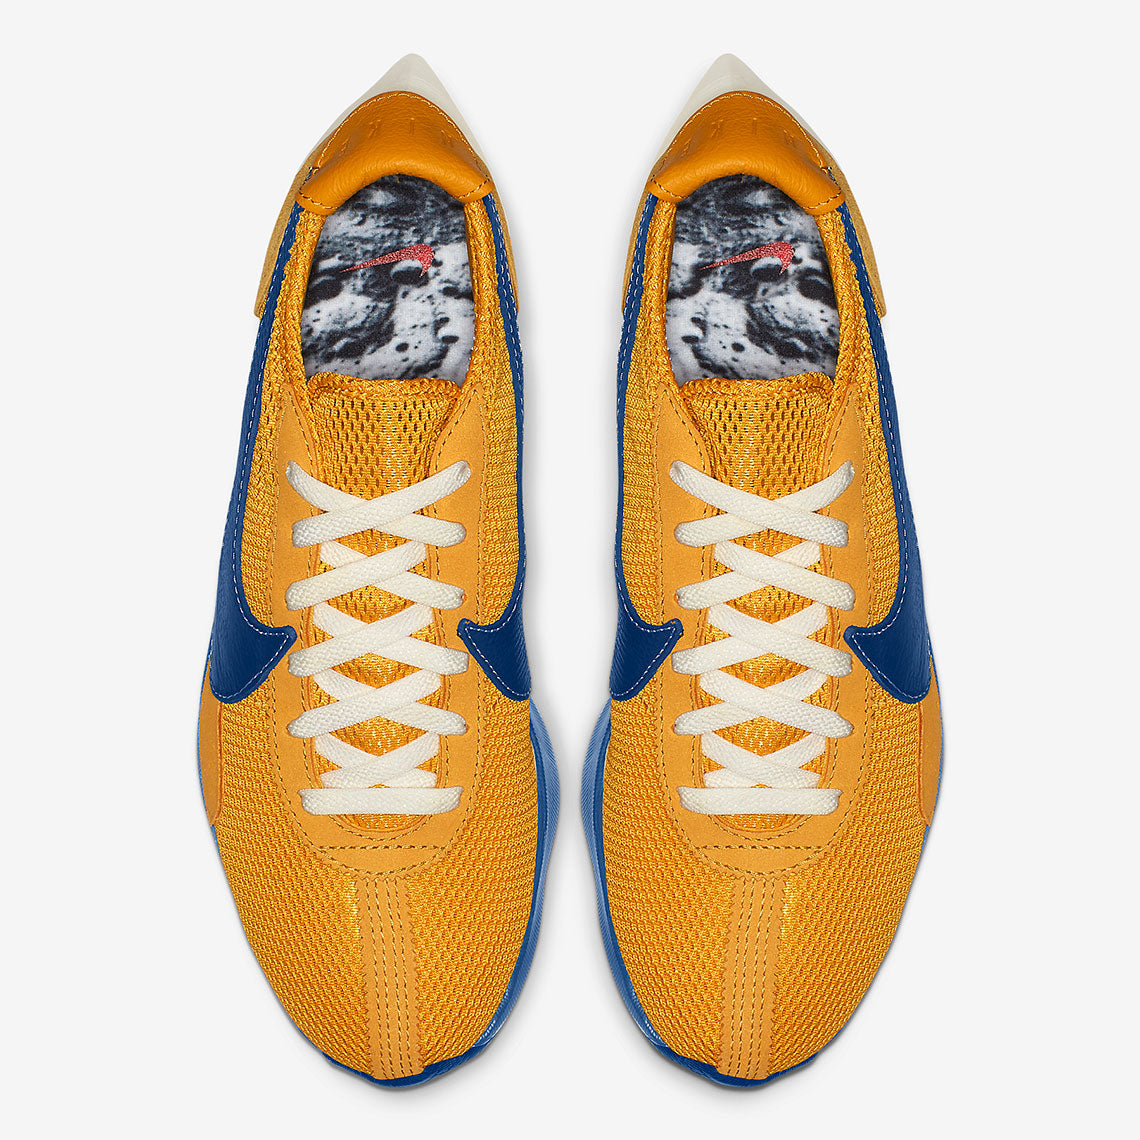 buy online a258f 95280 NIKE MOON RACER QS YELLOW OCHRE/GYM BLUE-SAIL | Free Shipping Offer ...